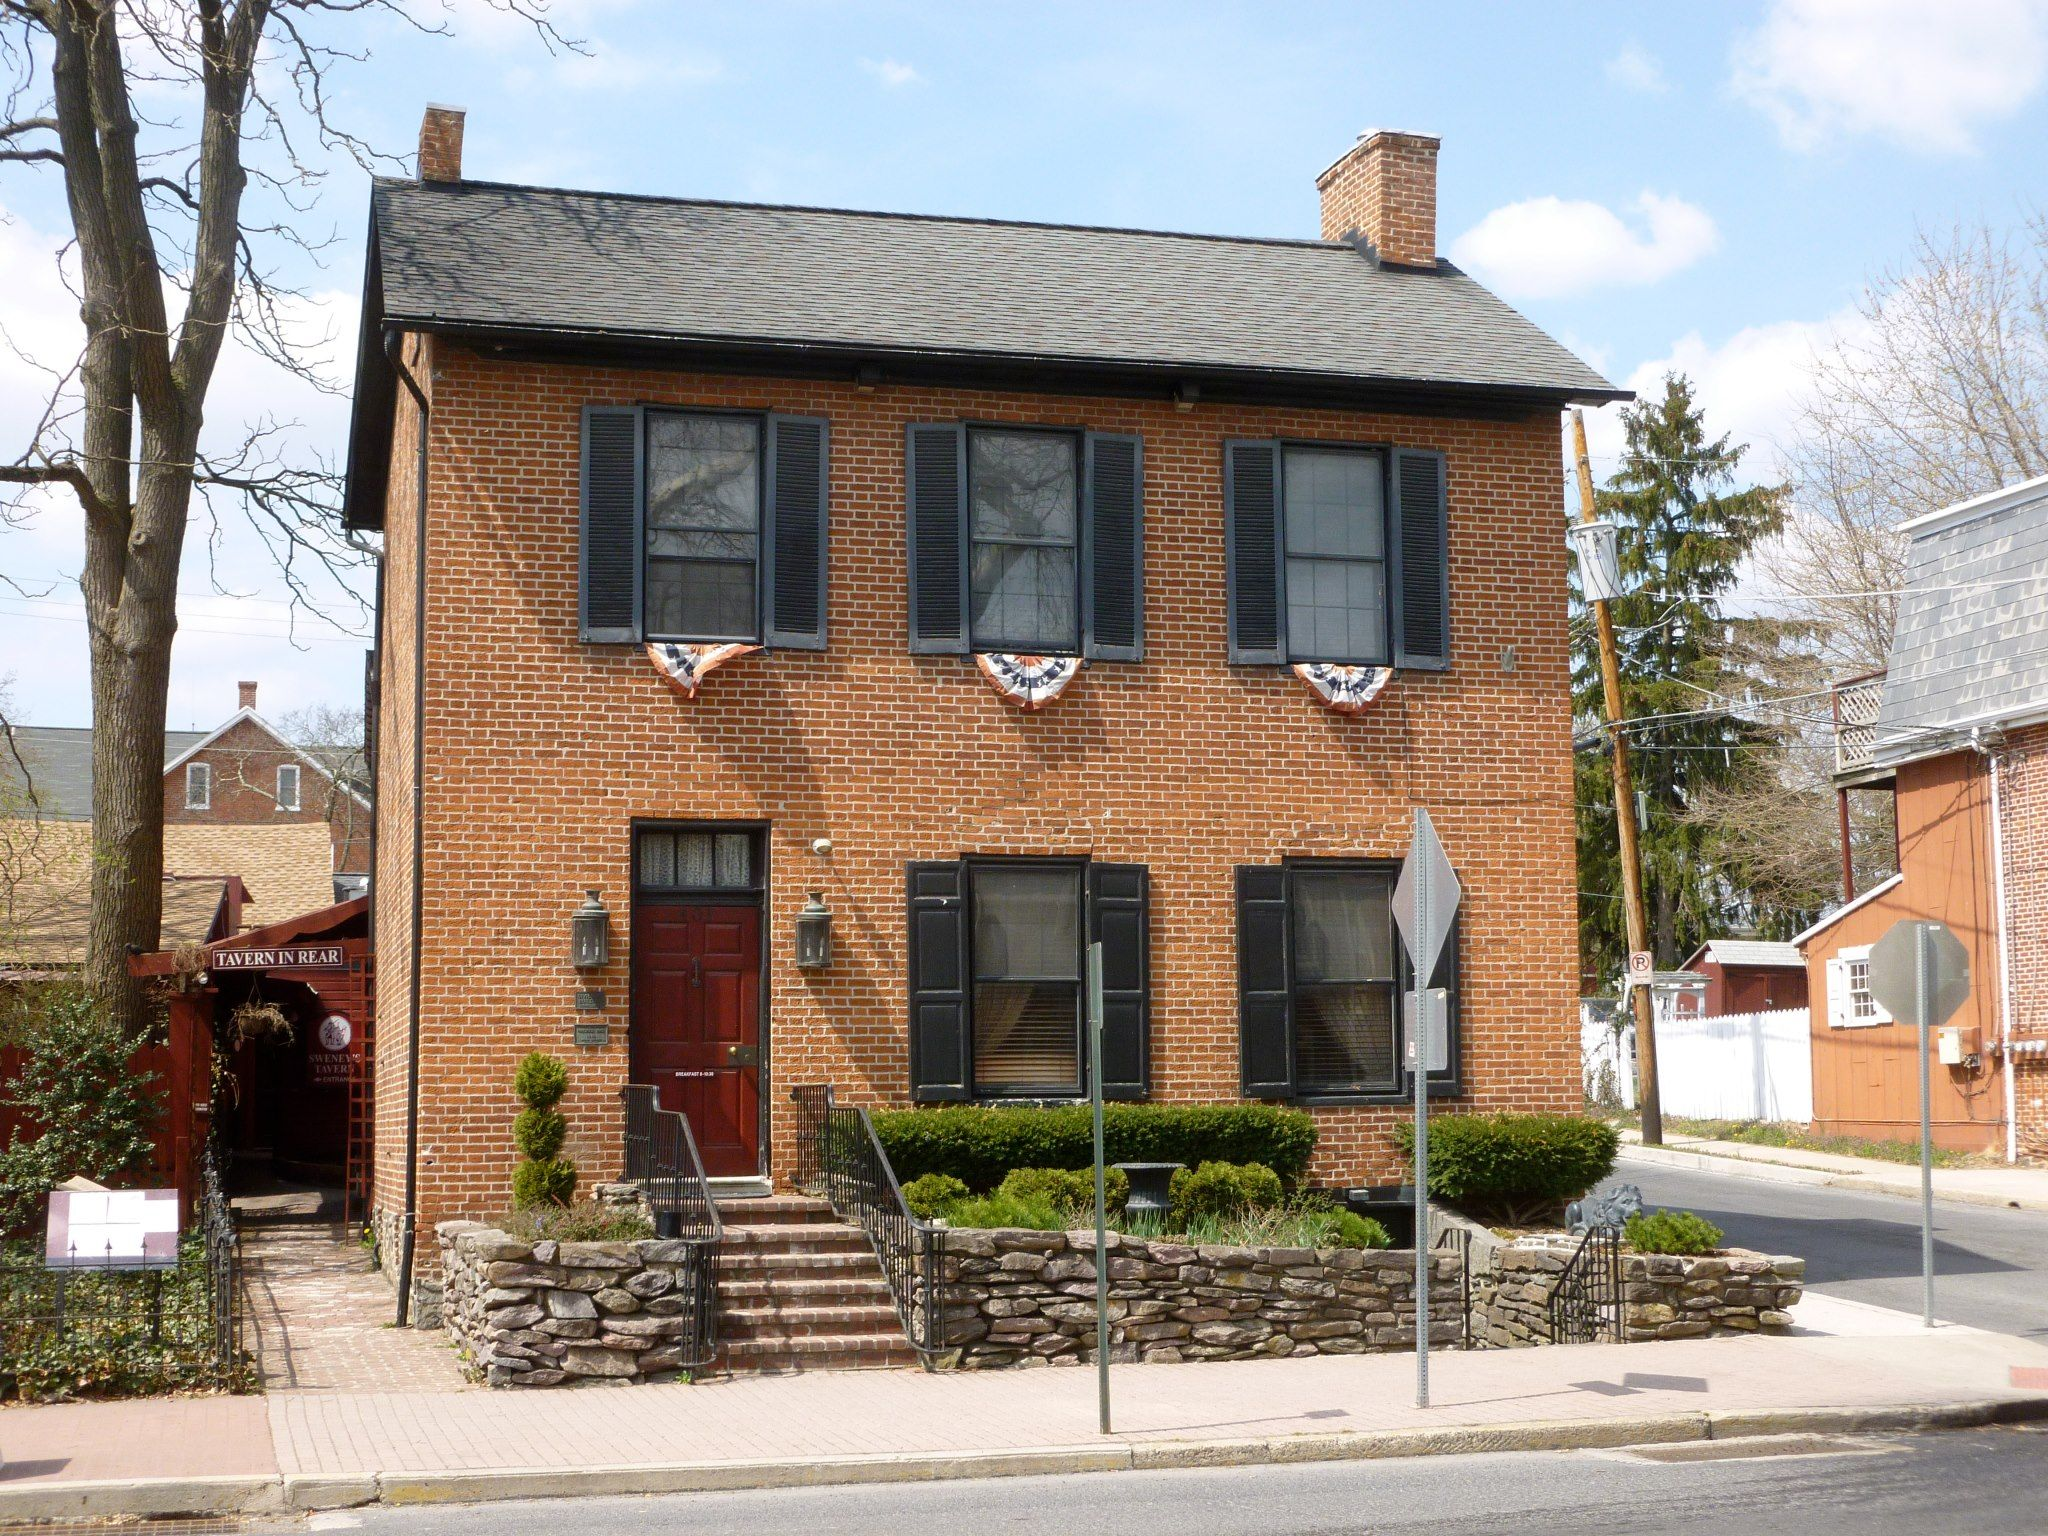 Deemed As One Of The Most Haunted Inns In America By The Travel Channel Guests Can Tour The Tavern Where Confede Farnsworth House Haunted Hotel Most Haunted